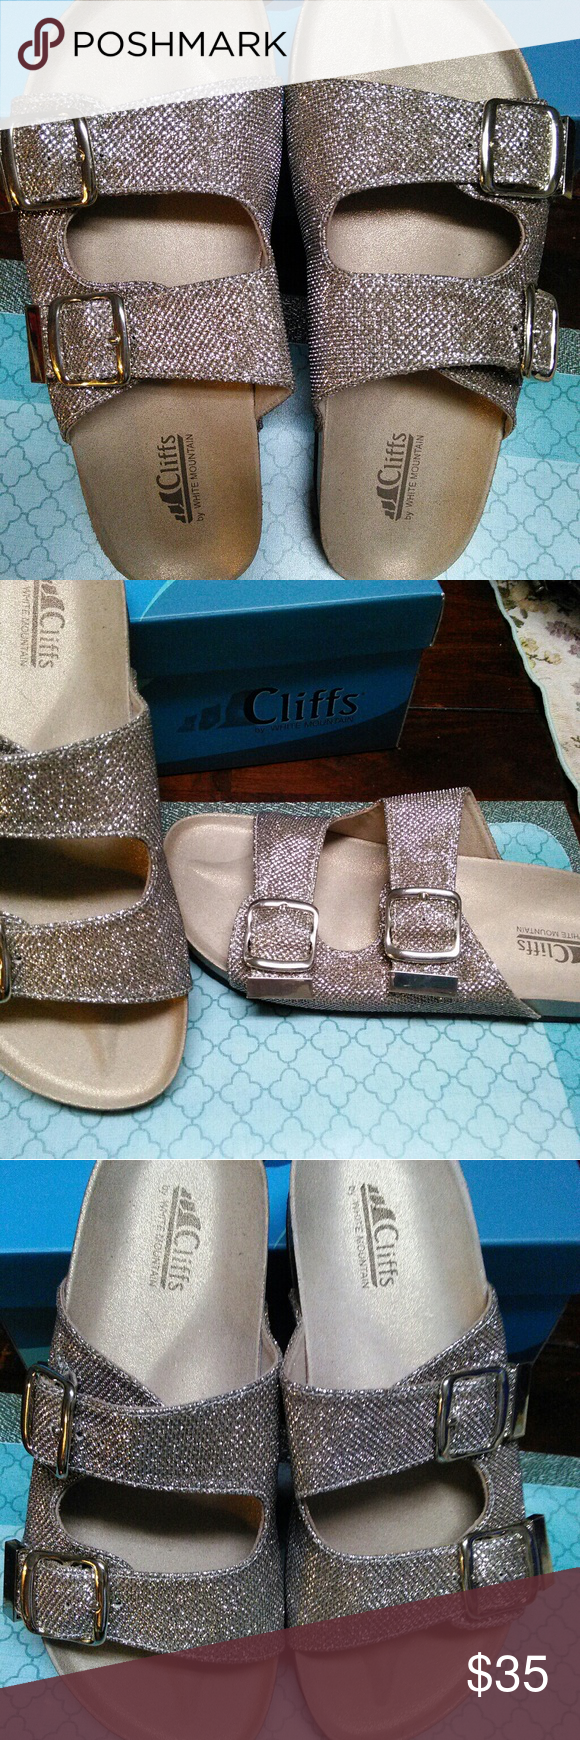 2ea1f05f9878 CLIFFS BY WHITE MOUNTAIN BIRKENSTOCK SANDALS Beautiful sandals with a gold  shimmer in EXCELLENT condition.